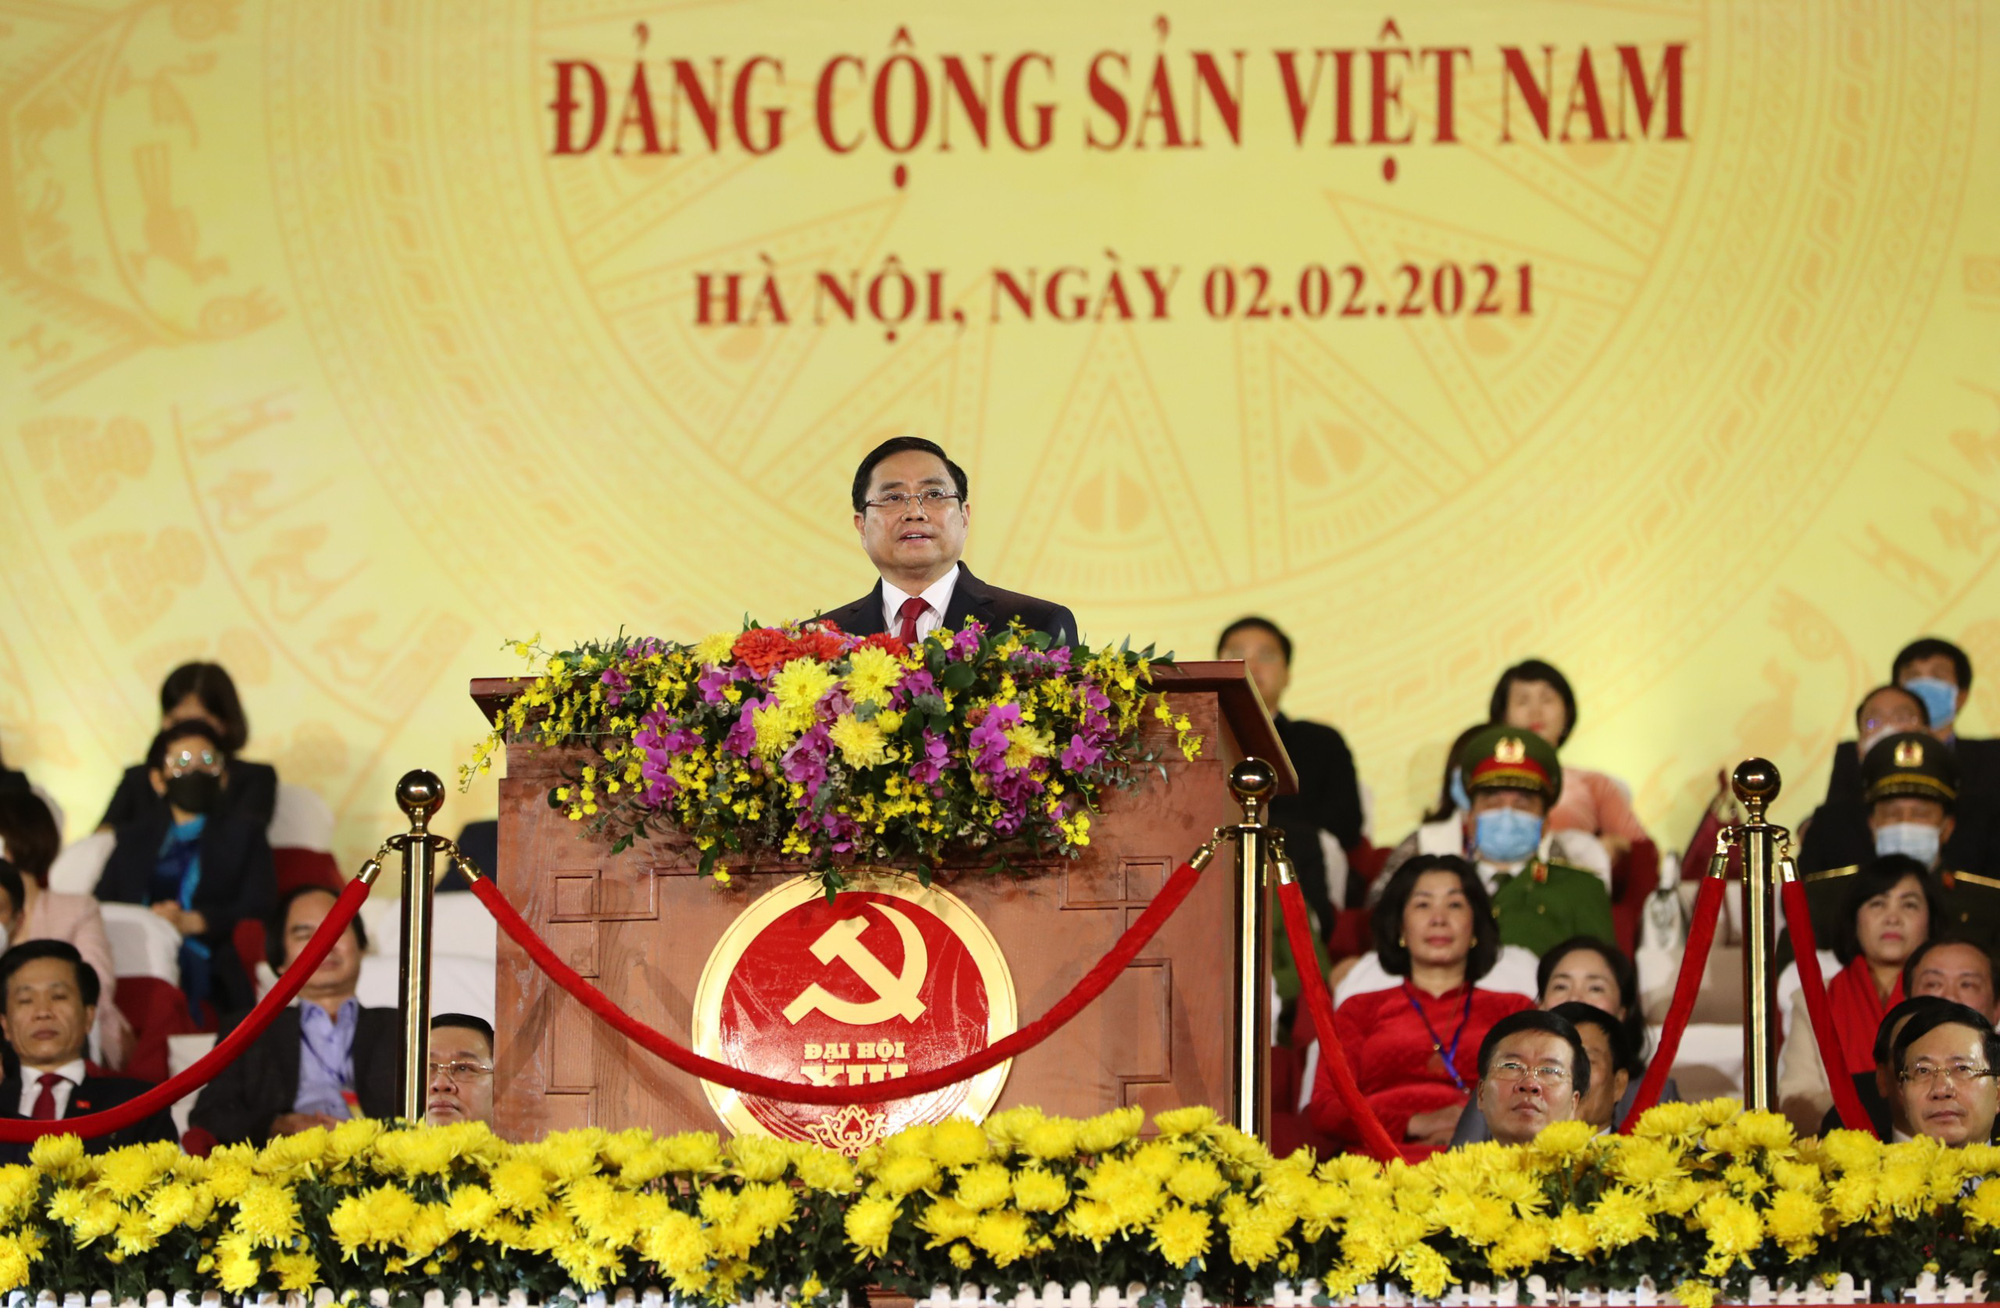 Pham Minh Chinh, Politburo member and head of the Party Central Committee's Organization Commission, delivers an opening speech at the music show in Hanoi, February 2, 2021. Photo: Nguyen Quang Phuc / Tuoi Tre